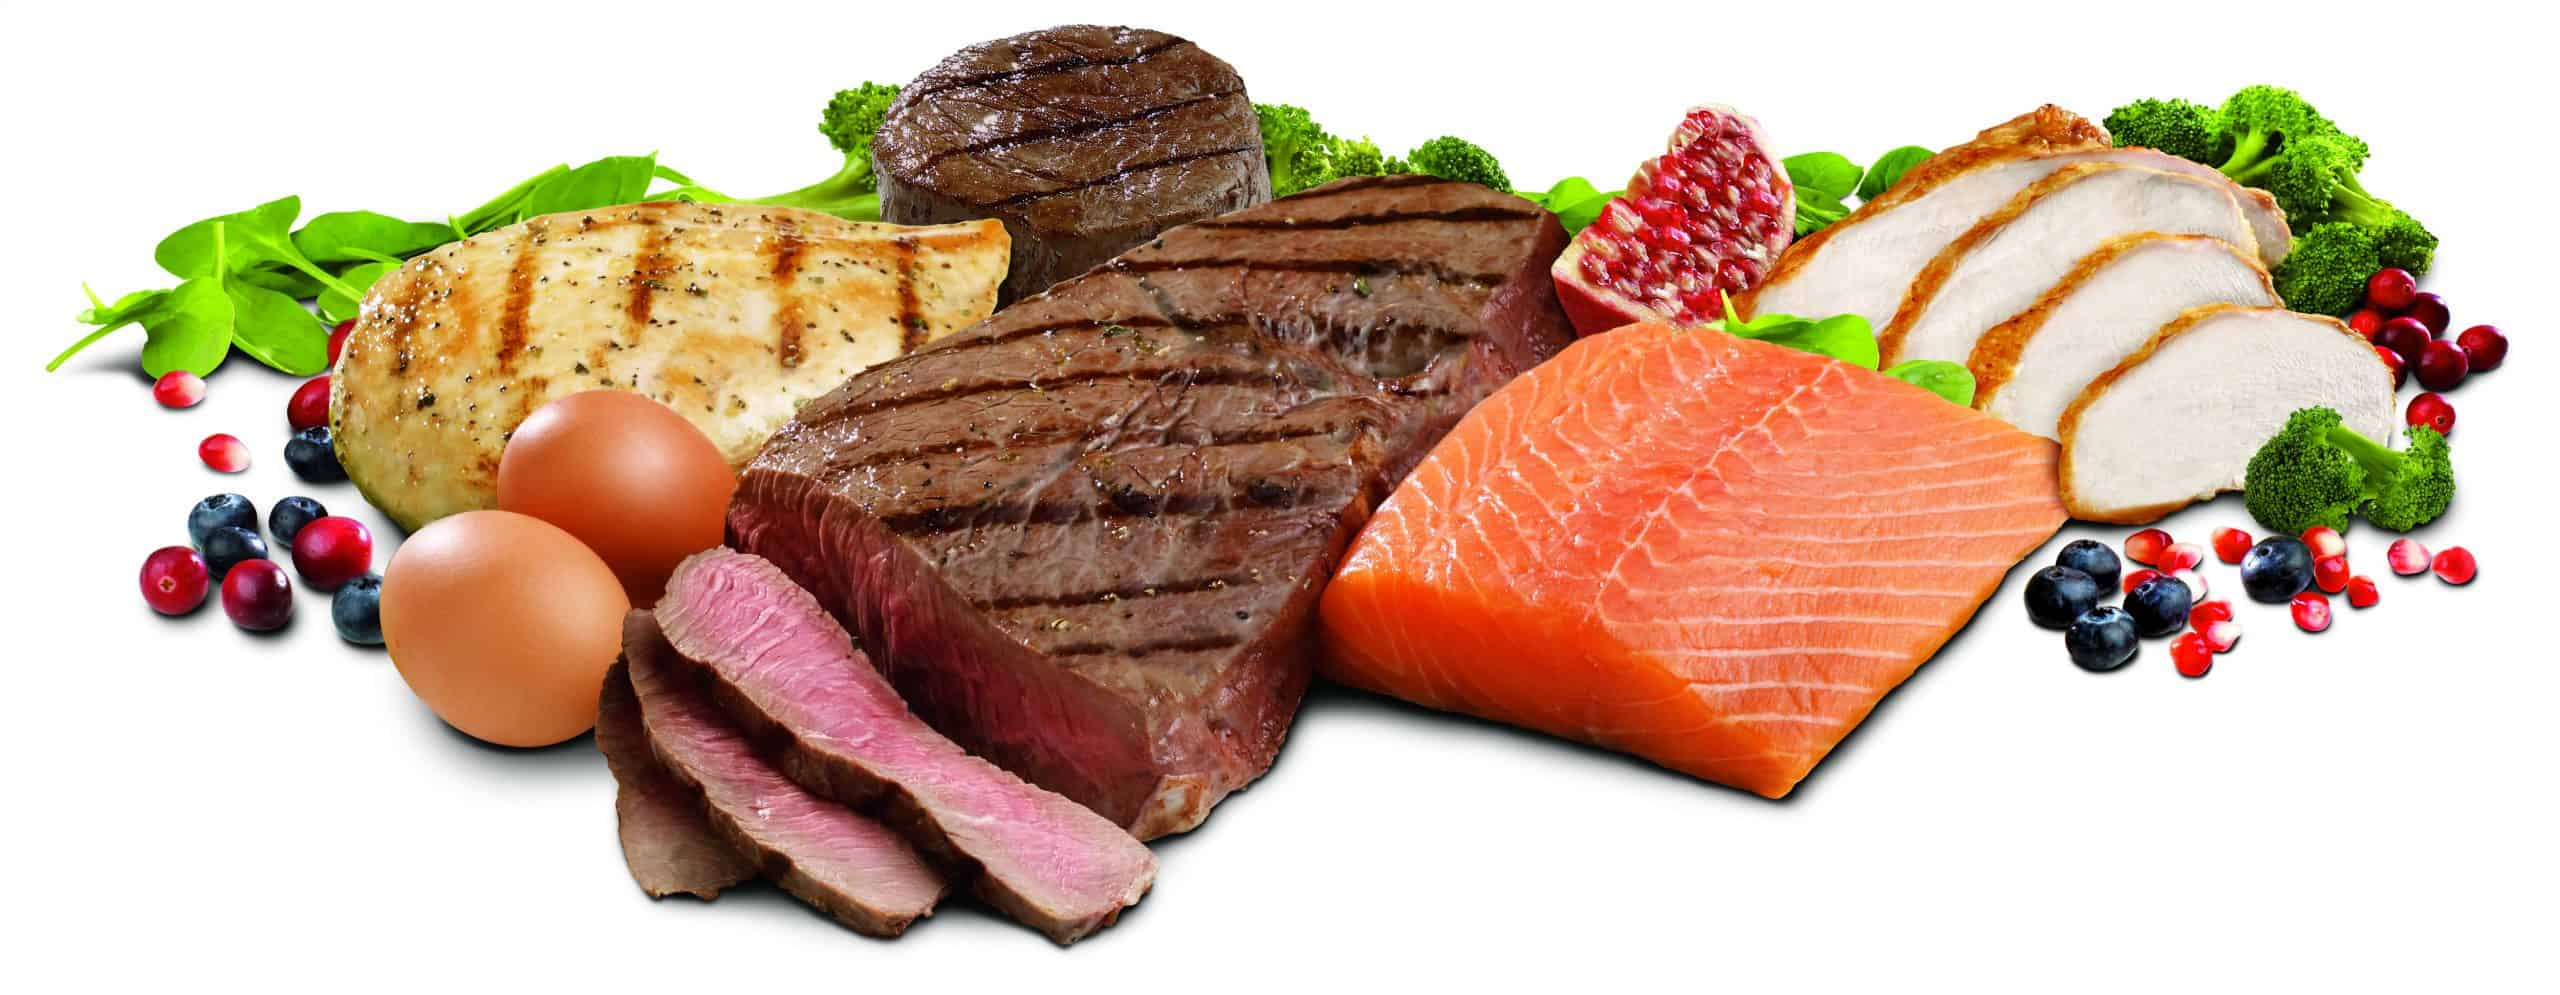 image-protein-foods